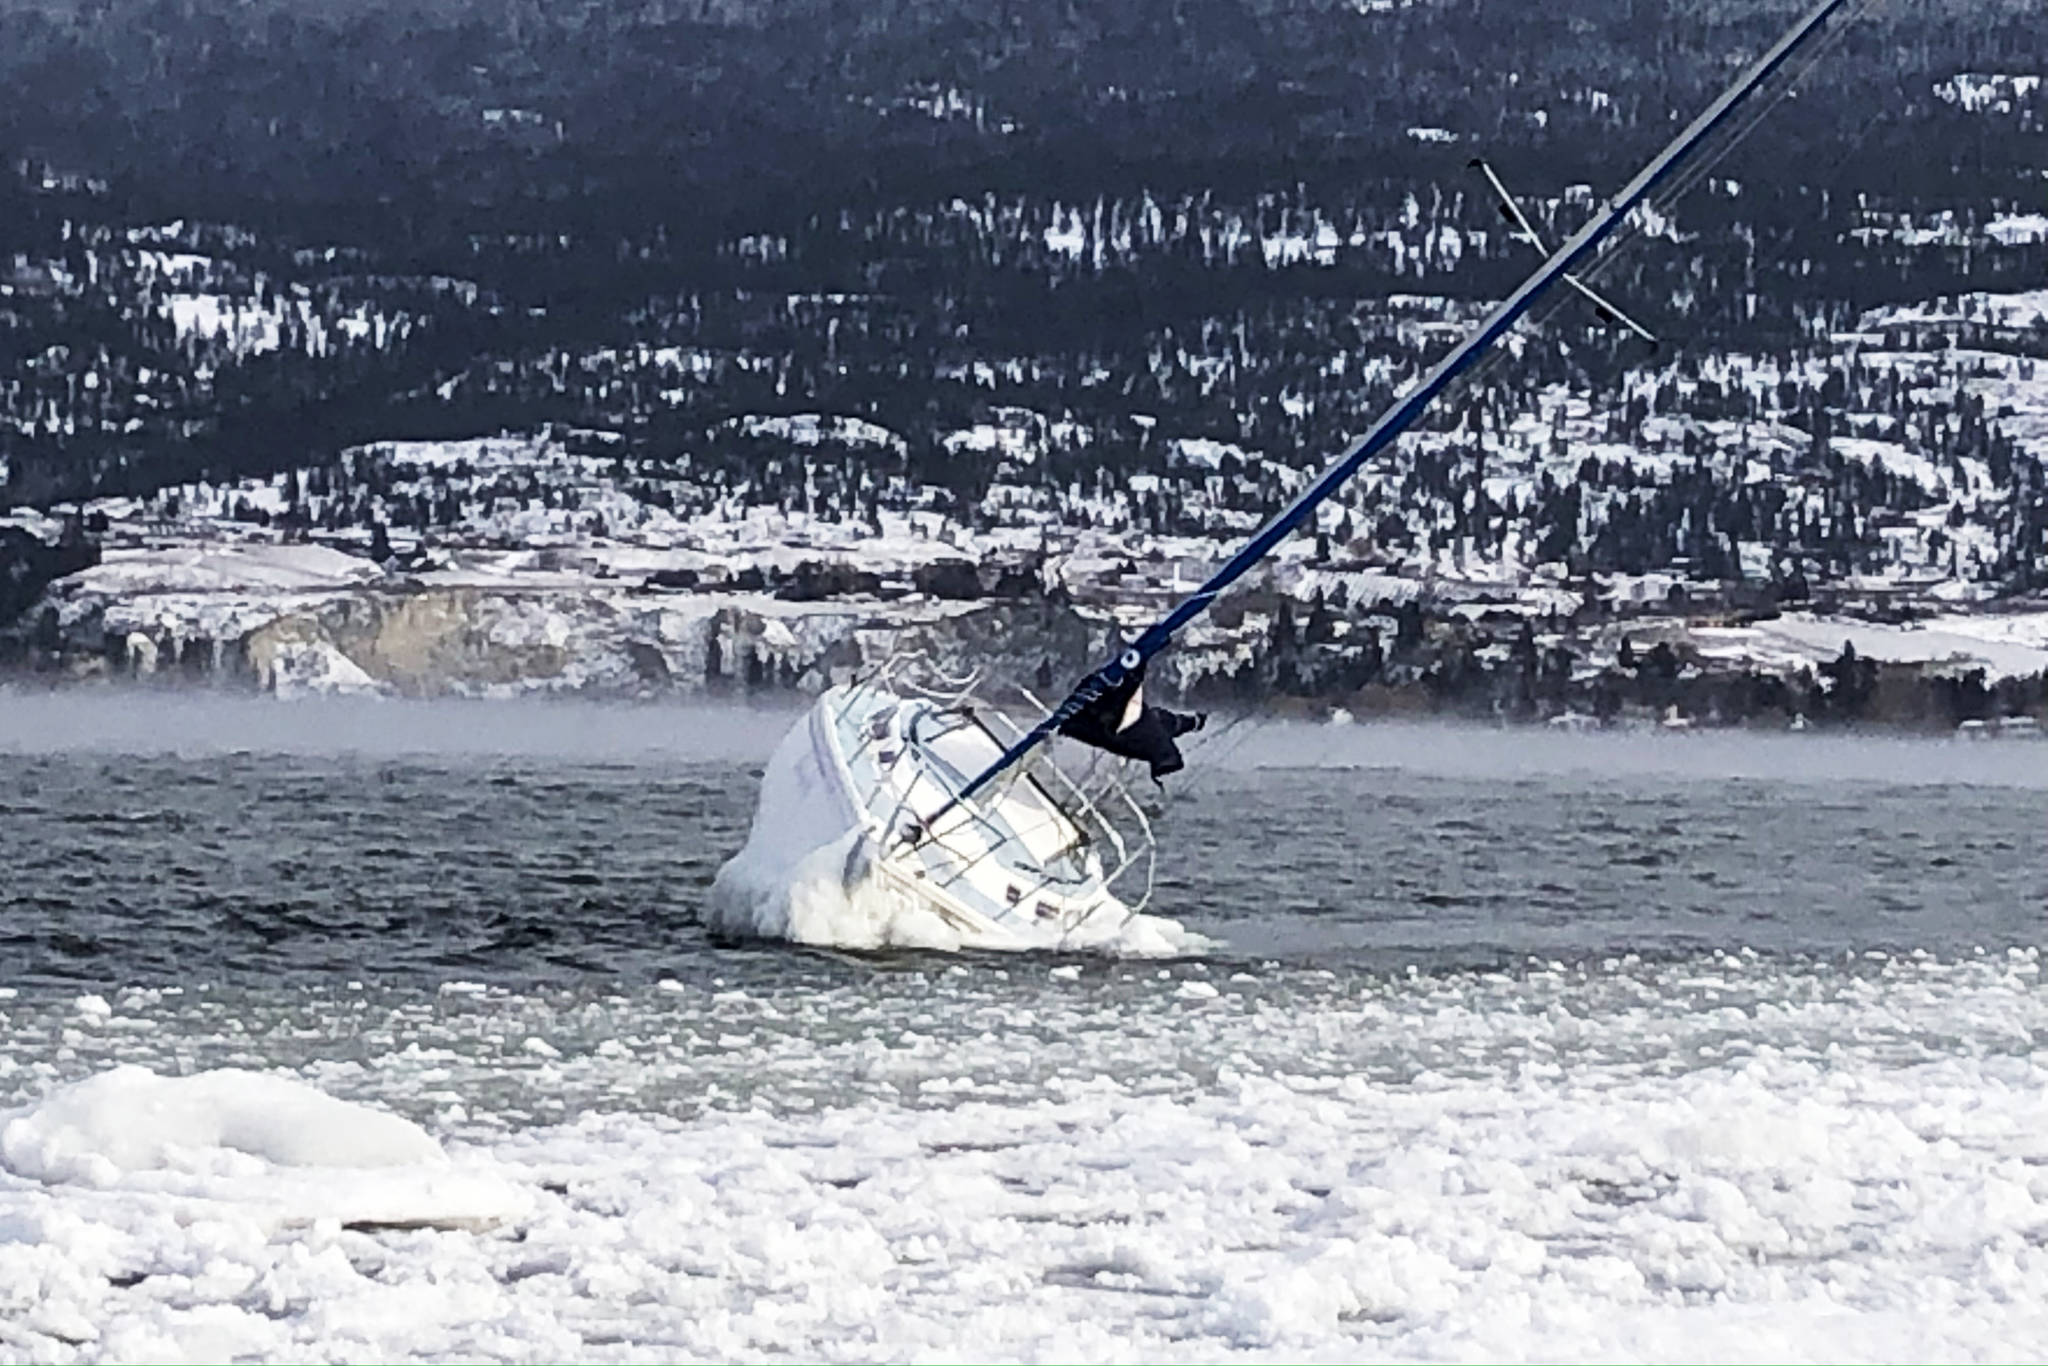 In the winter of 2020, an ice-covered sailboat was found in the water near Summerland Beach RV Park north of Trout Creek. (John Arendt/Summerland Review)